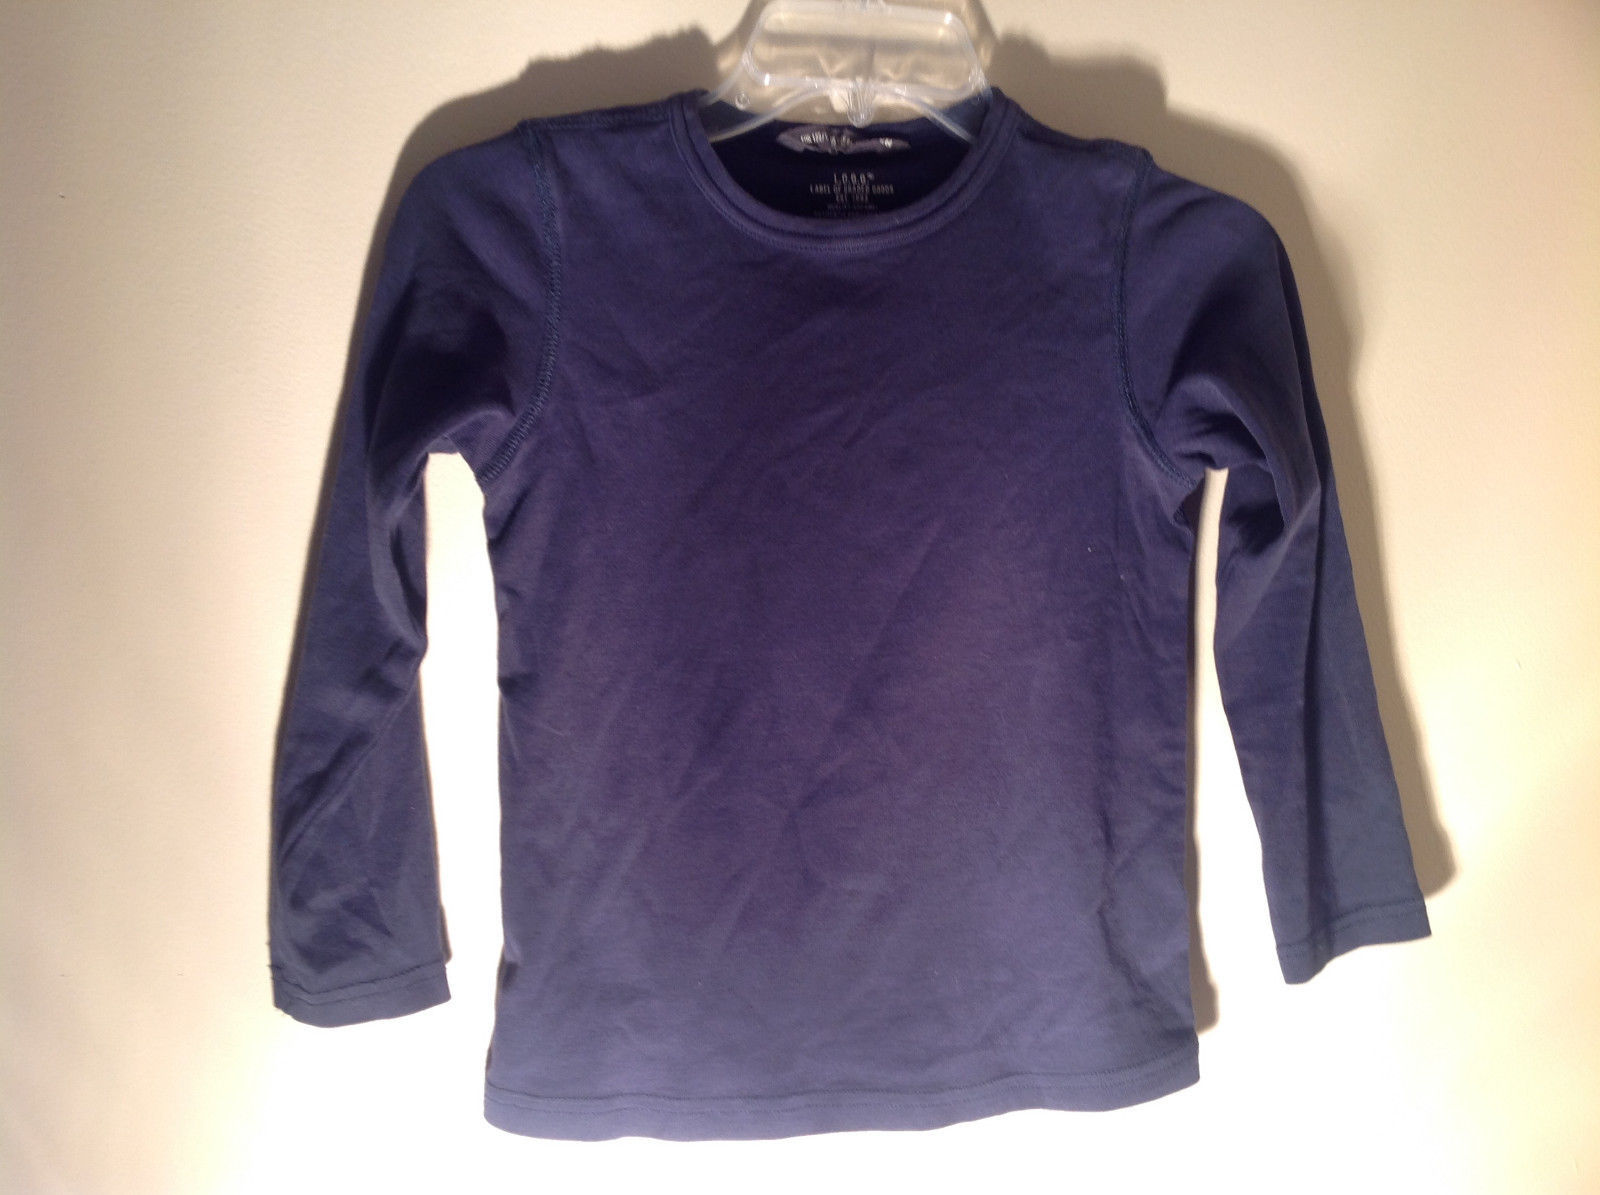 Dark Blue Long Sleeve Shirt LOGG 100 Percent Organic Cotton Size 6 to 8 years